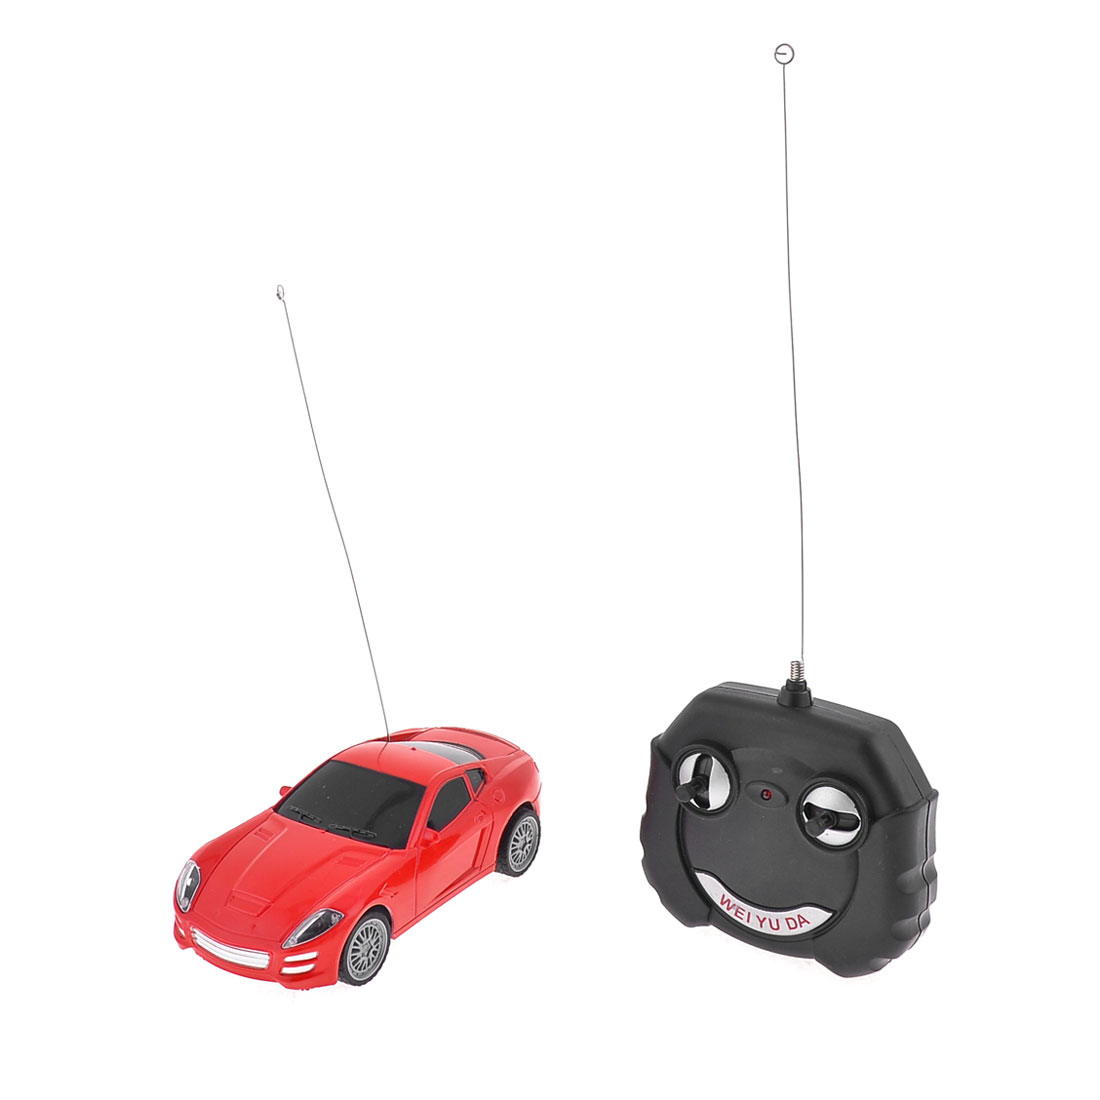 Red Plastic Remote Control Operated Racing Car Toy for Child